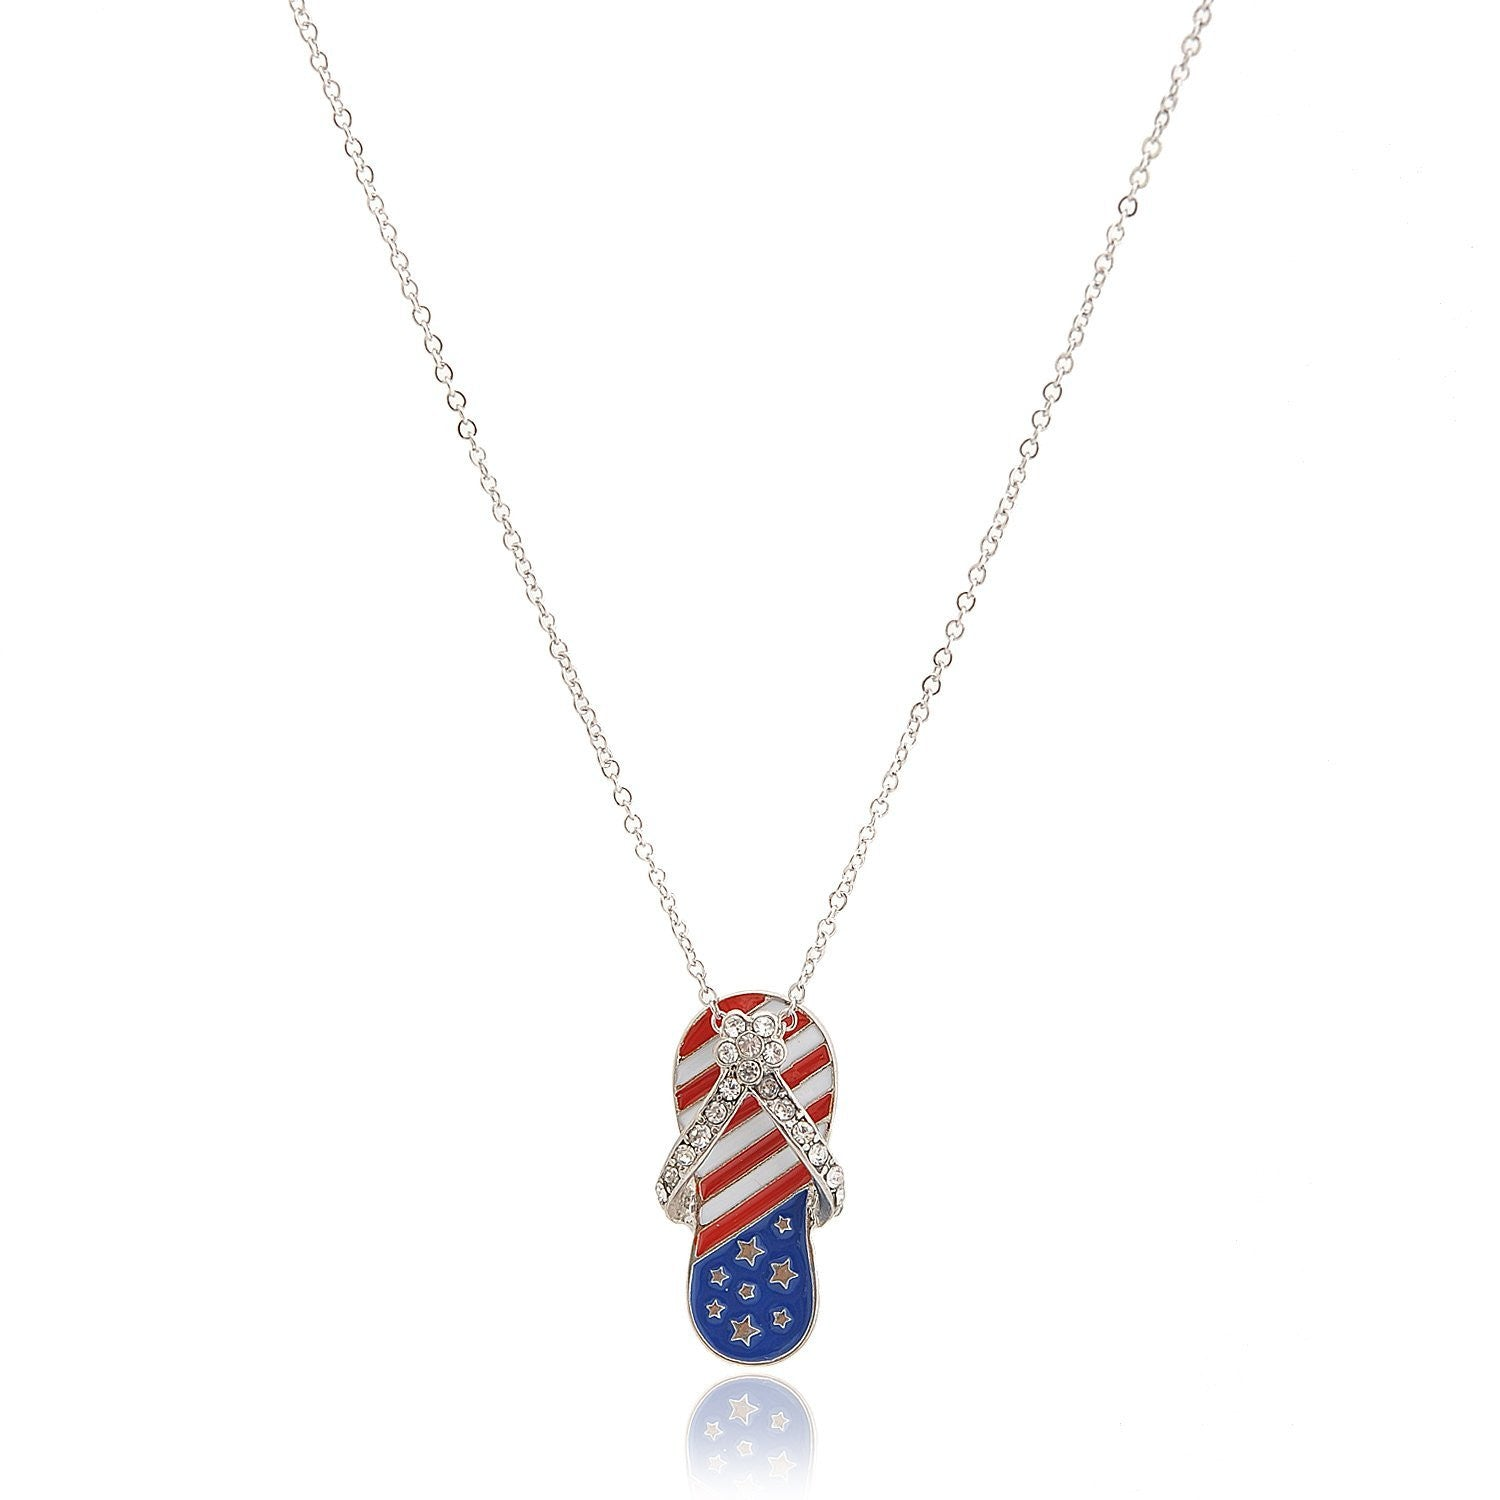 be american product an proud love products image necklace bargain flag to